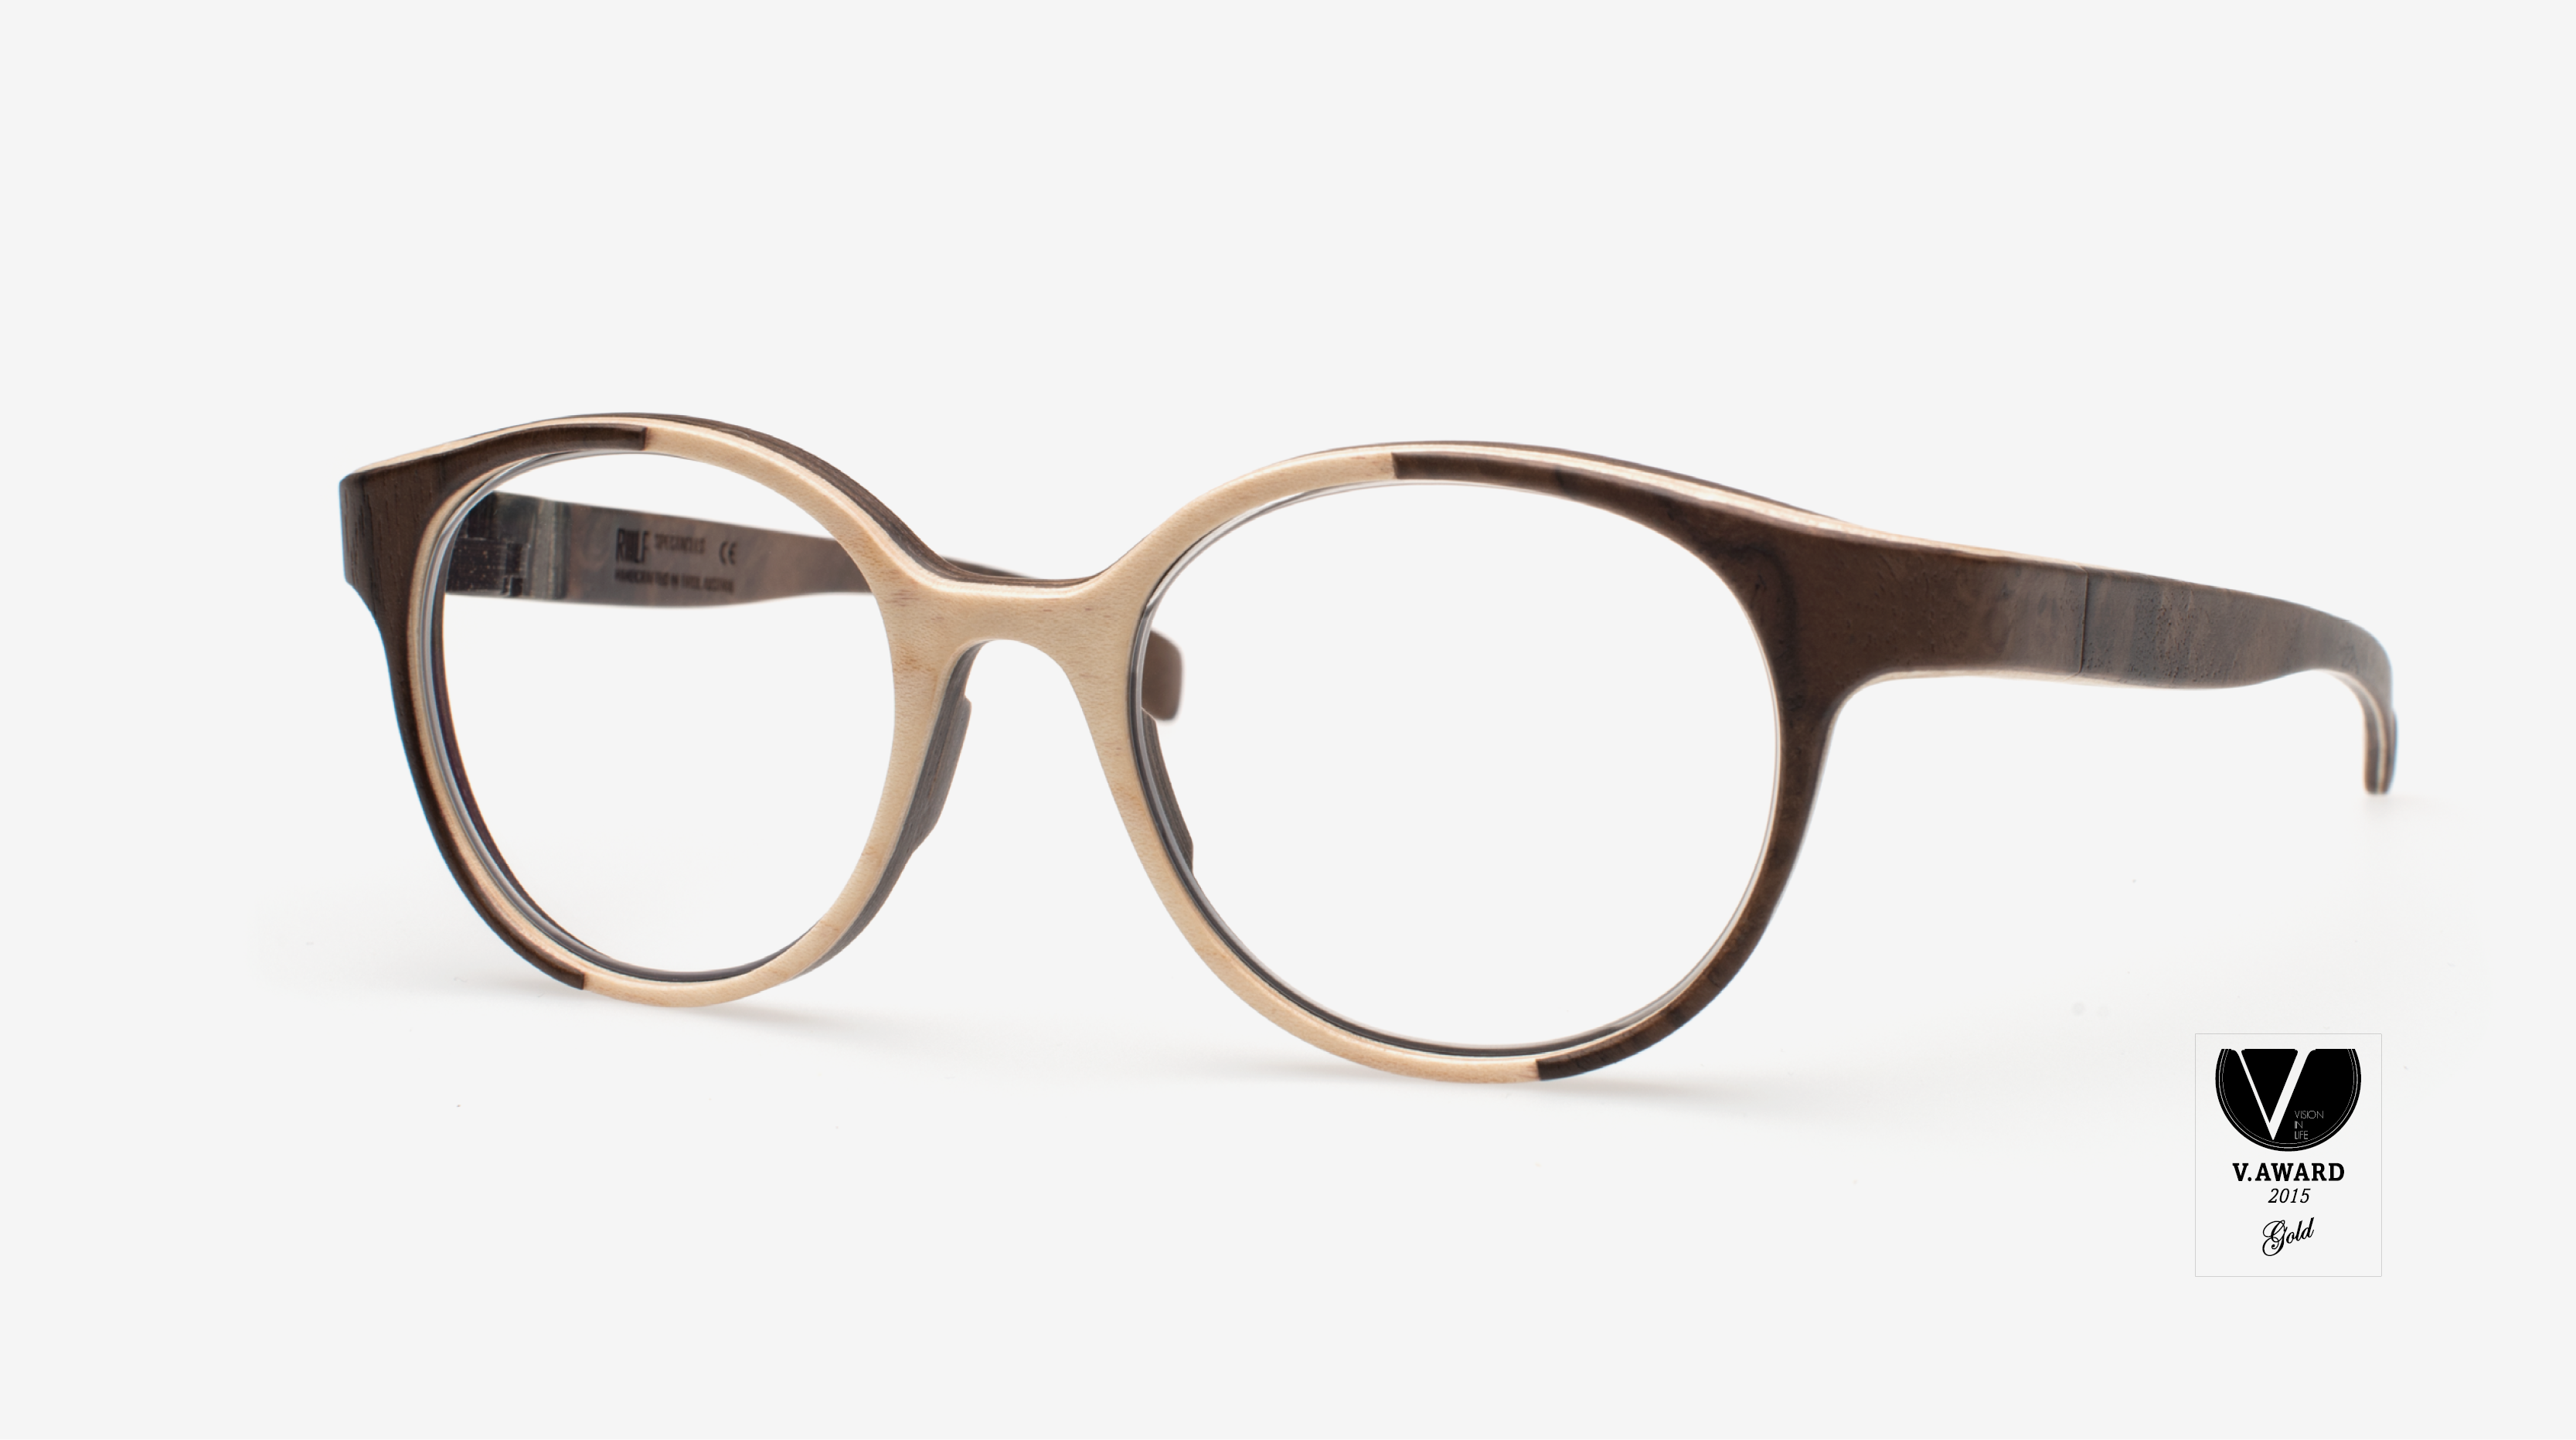 Tigre - ROLF Spectacles | Eyewear | Pinterest | Eyewear, Elegant and ...